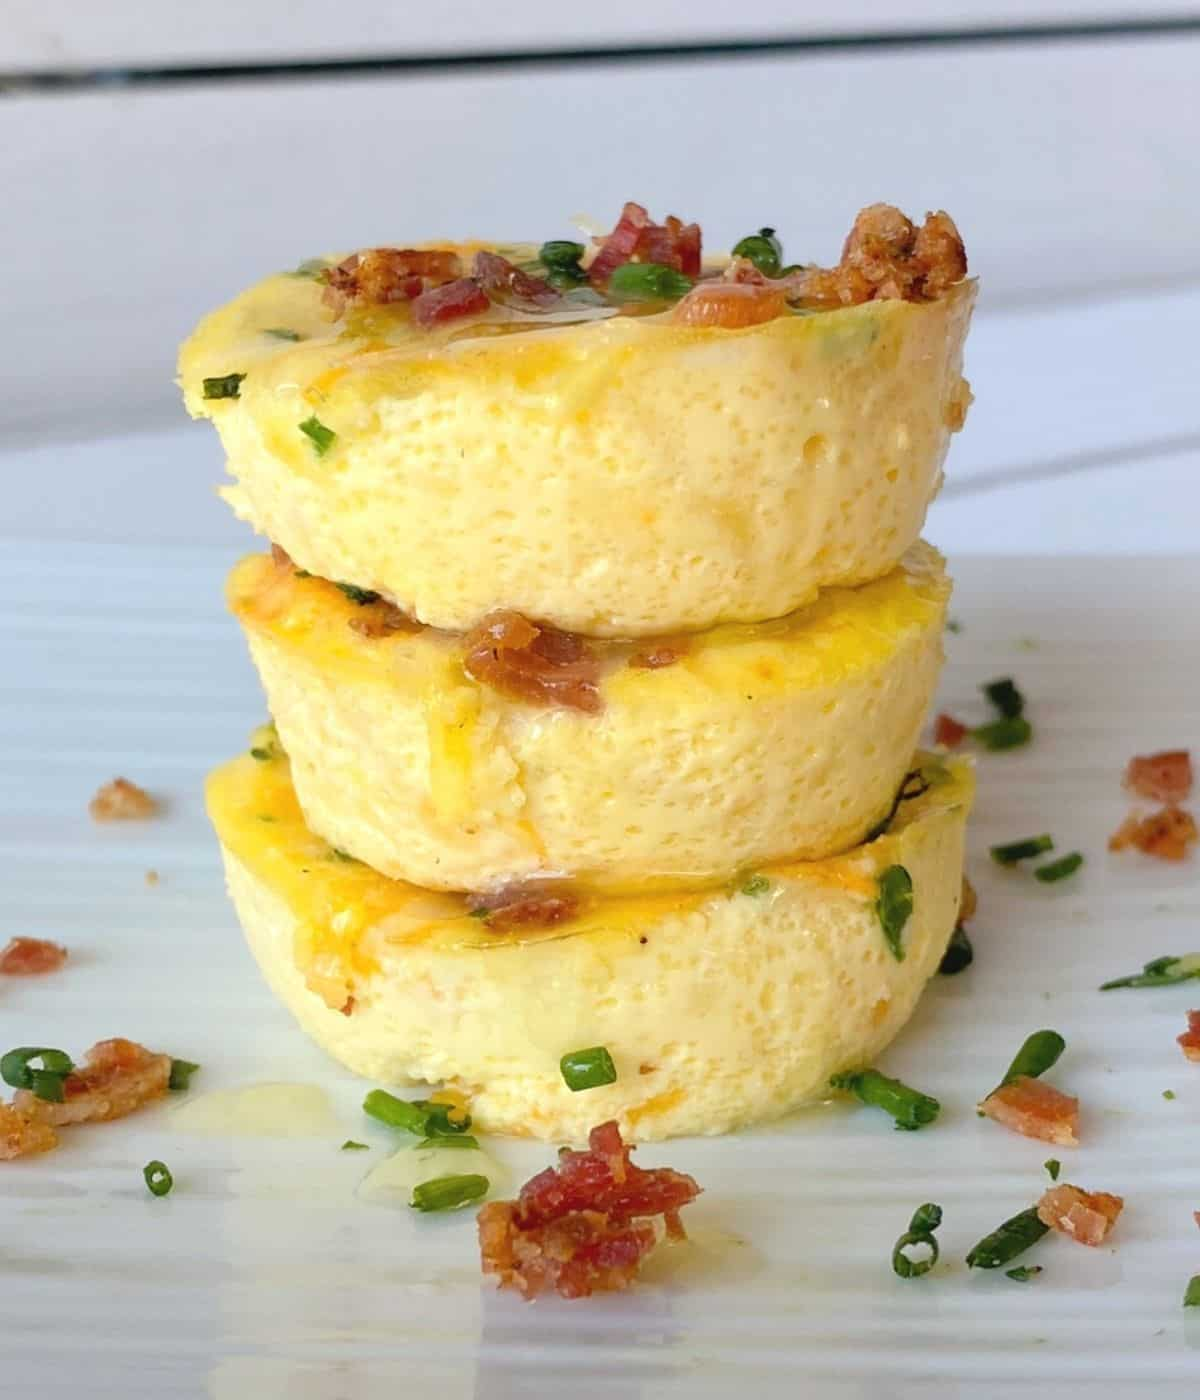 Starbucks copycat sous vide egg bites stacked on top of eachother.